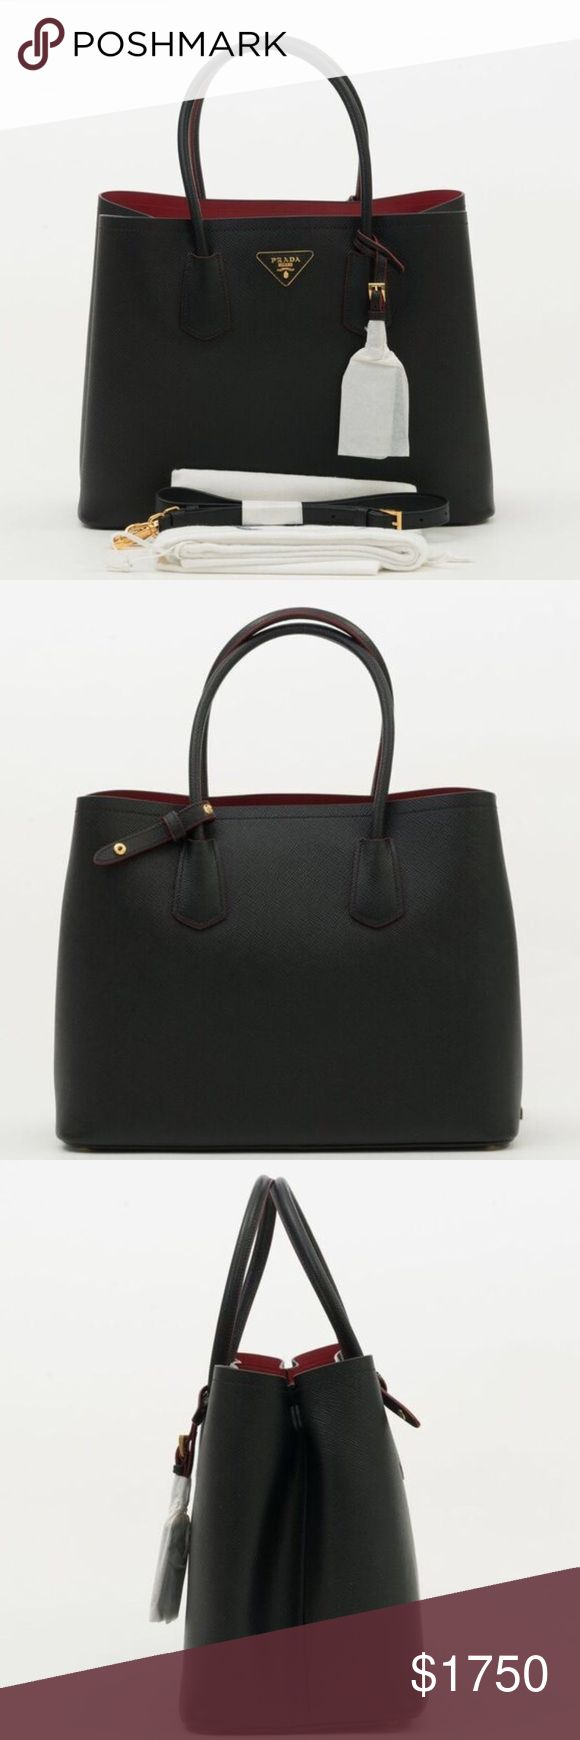 Prada saffiano cuir large tote black NWT 💯 AUTHENTIC  🎀 BRAND NEW ⛔️ NO TRADES  ⬇️ DISCOUNTED  ✈️ SHIPS QUICKLY   AUTHENTICITY AND QUALITY WILL BE VERIFIED BY POSHMARK CONCIERGE PRIOR TO BUYER RECEIVING THEIR ORDER.   Prior to purchasing the bag, try it in person at your local boutique or department shop to make sure that you are happy with the size and overall look. If you ask for dimensions, it means you have no idea what you're buying.   Serious inquiries only! Prada Bags Totes